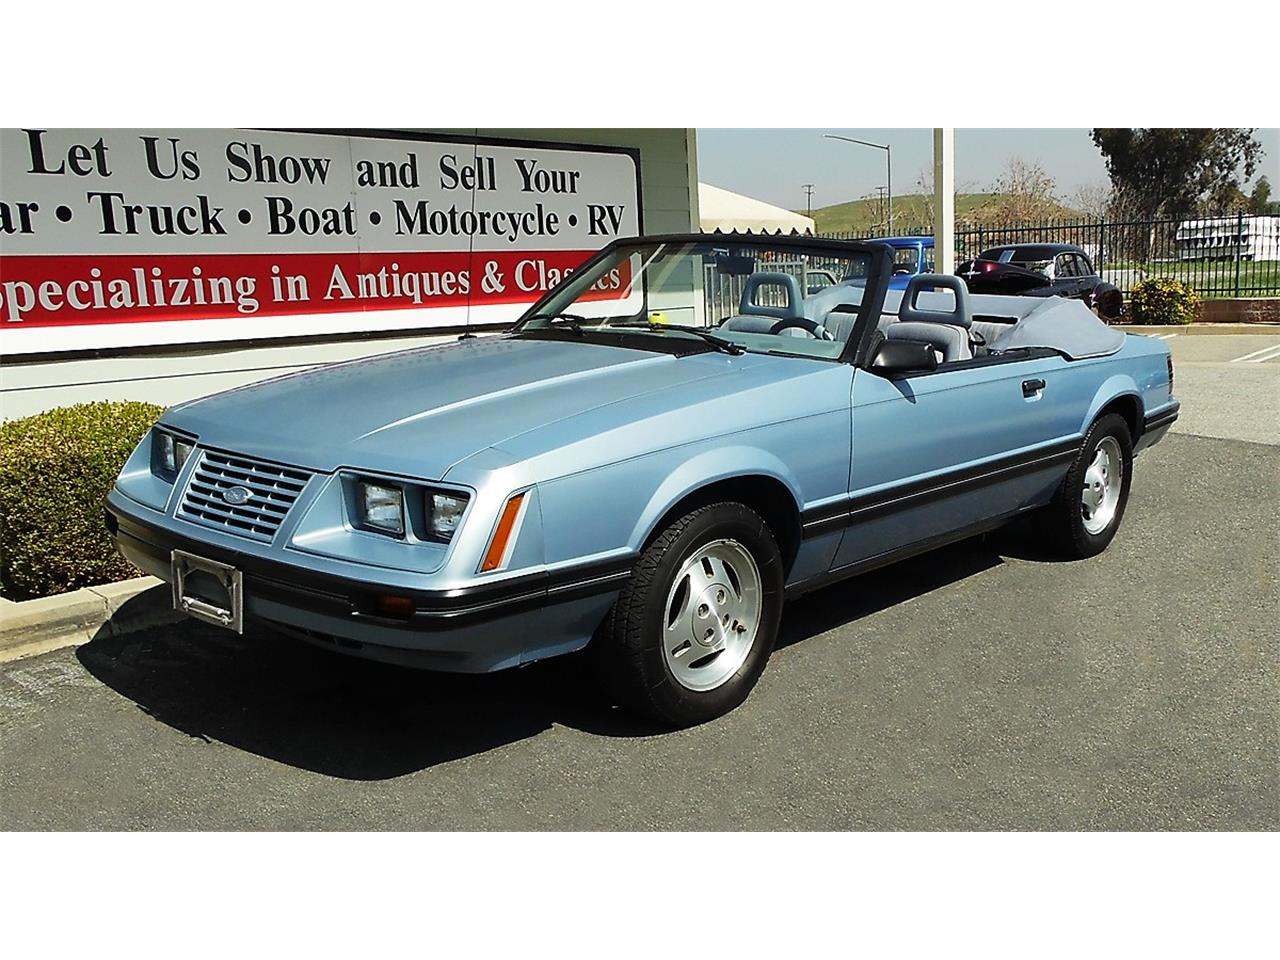 Large picture of 84 mustang n67v